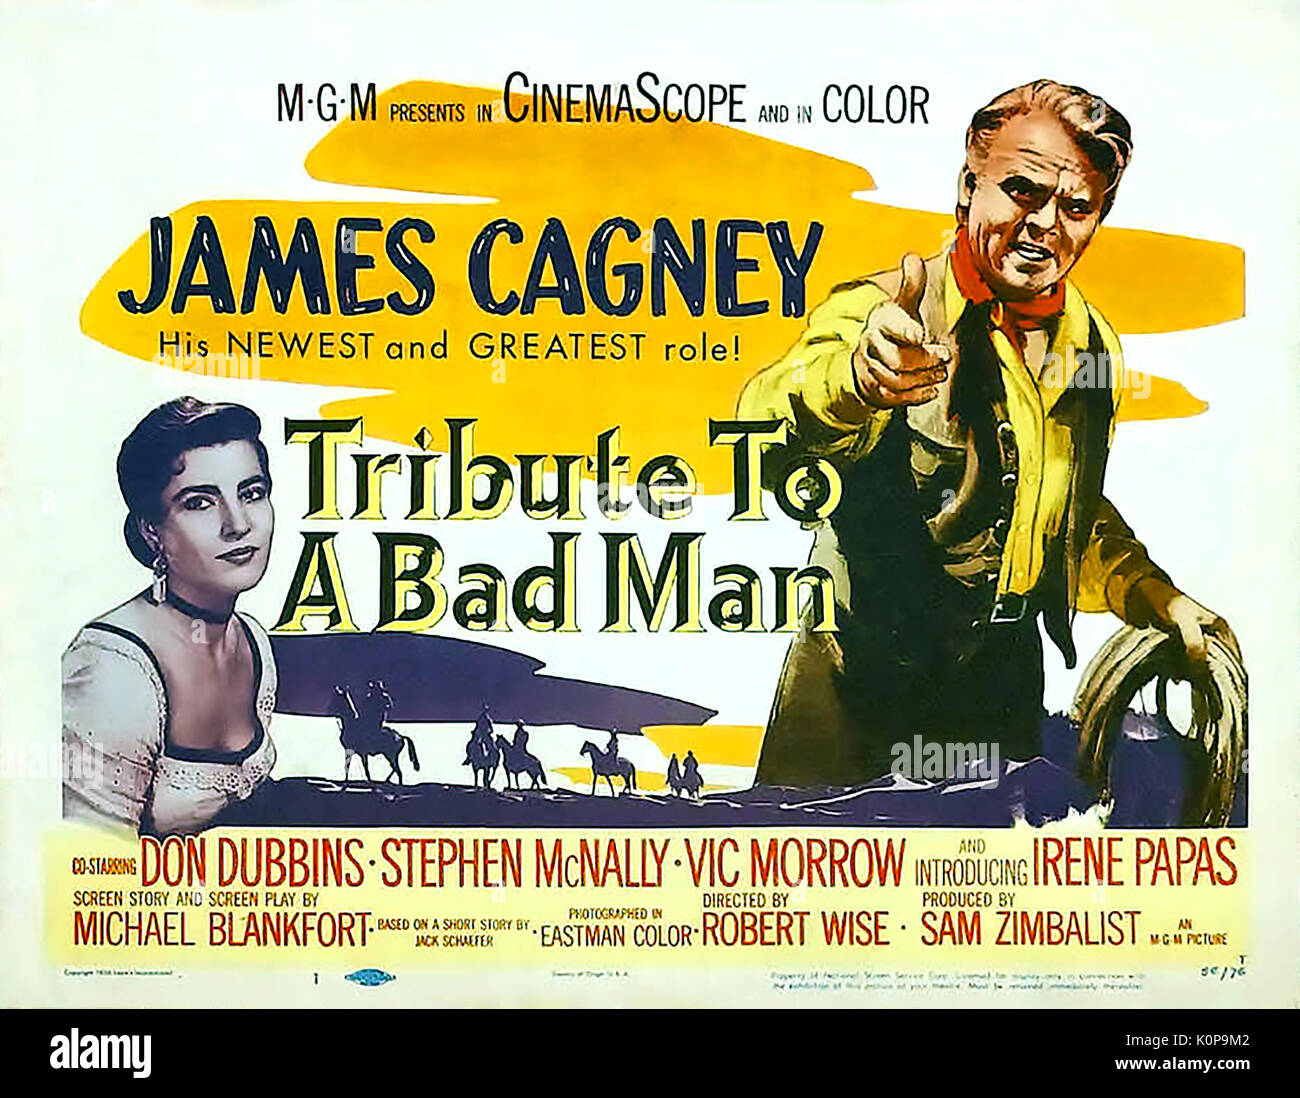 TRIBUTE TO A BAD MAN 1956 MGM Western film with James Cagney and Irene Papas - Stock Image